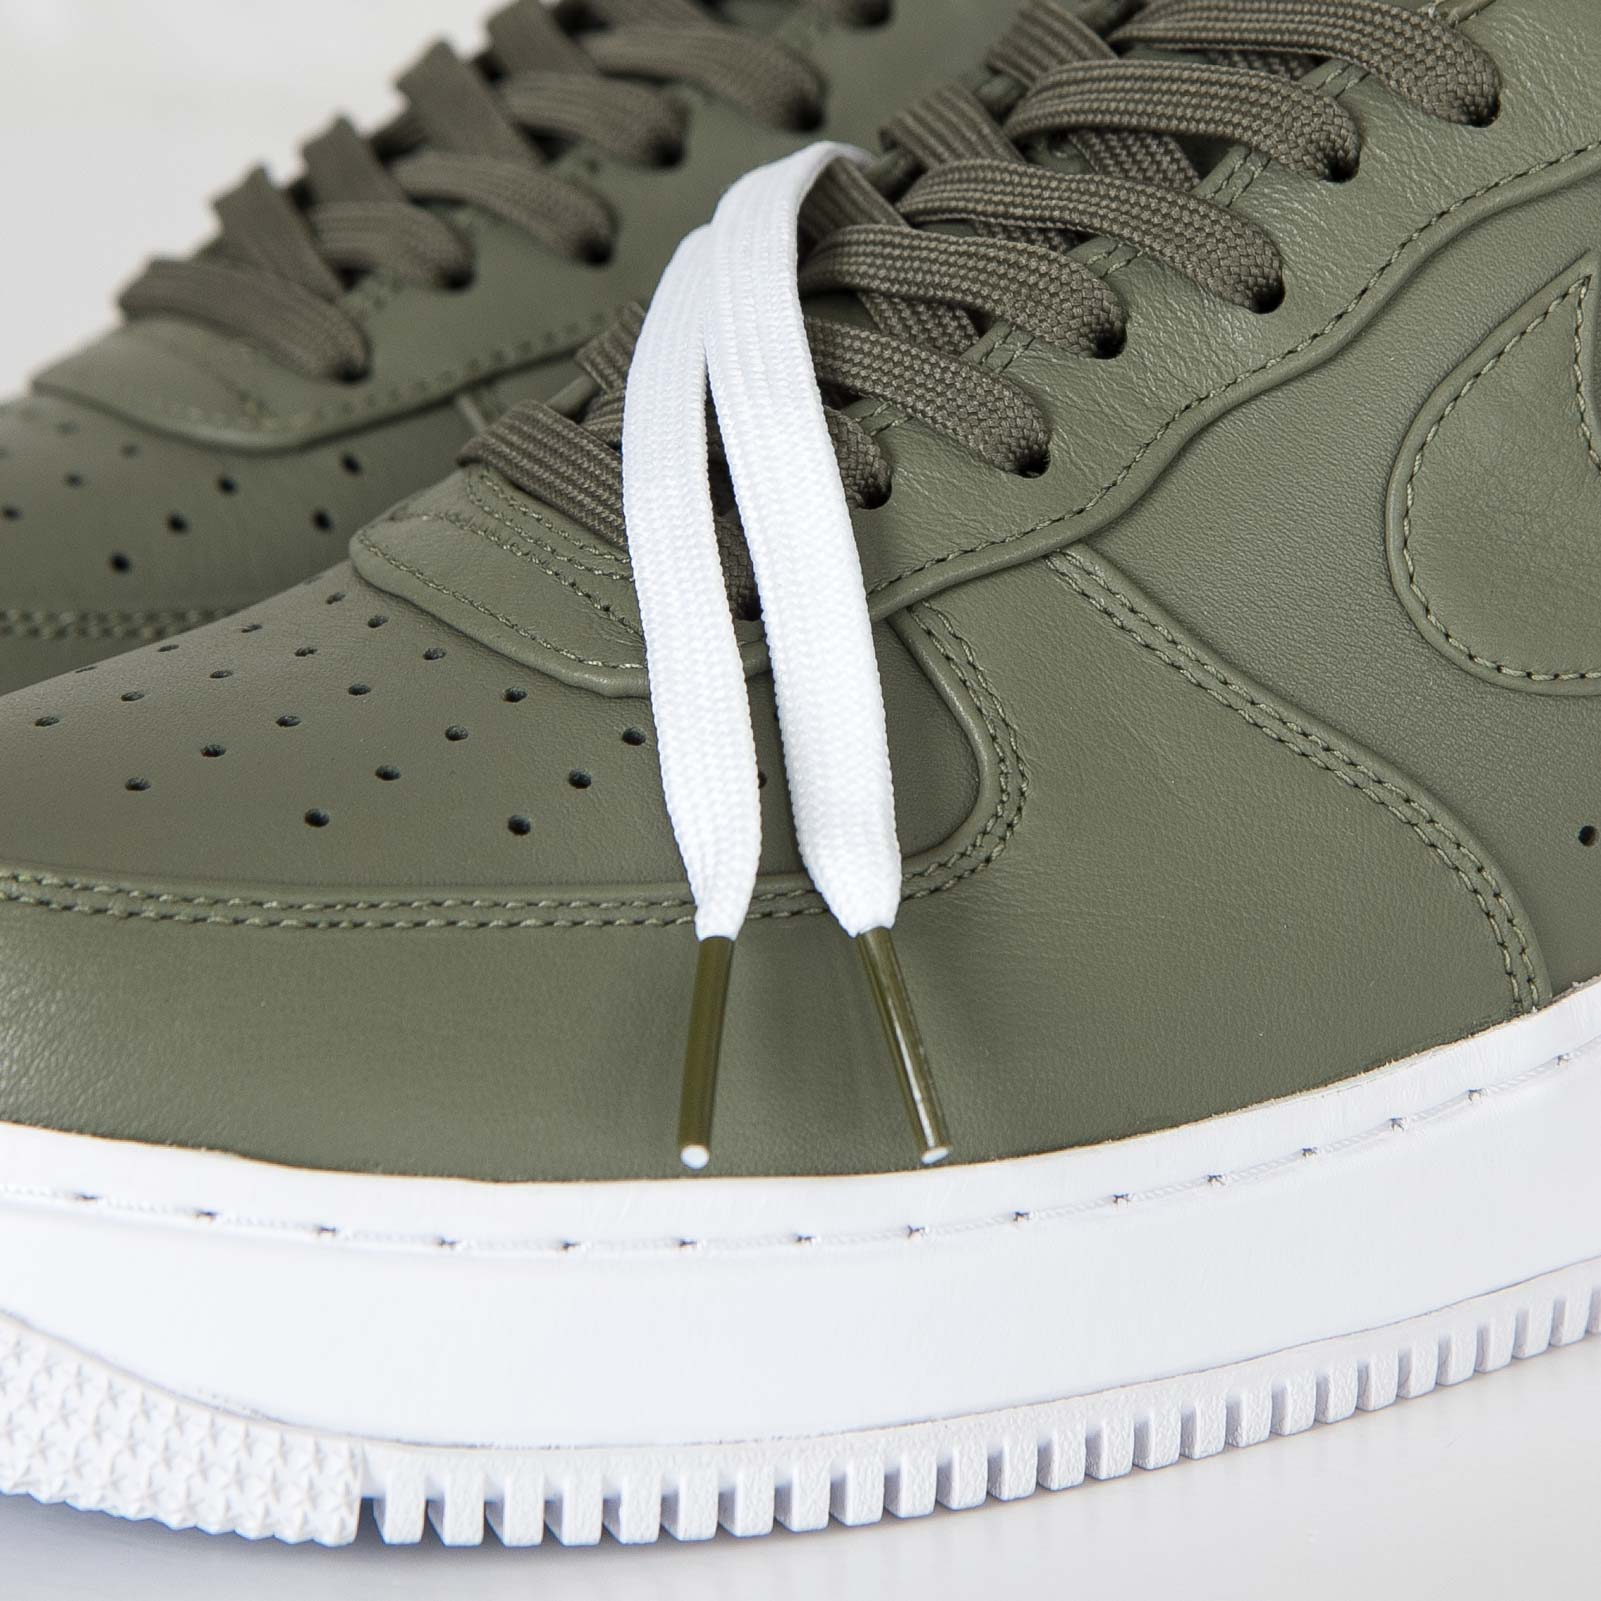 big sale a1707 4e13f ... 36 45 limited edition olive green sneaker  Office Shoes Jordan, Nike  ... Nike NikeLab Air Force 1 Low .